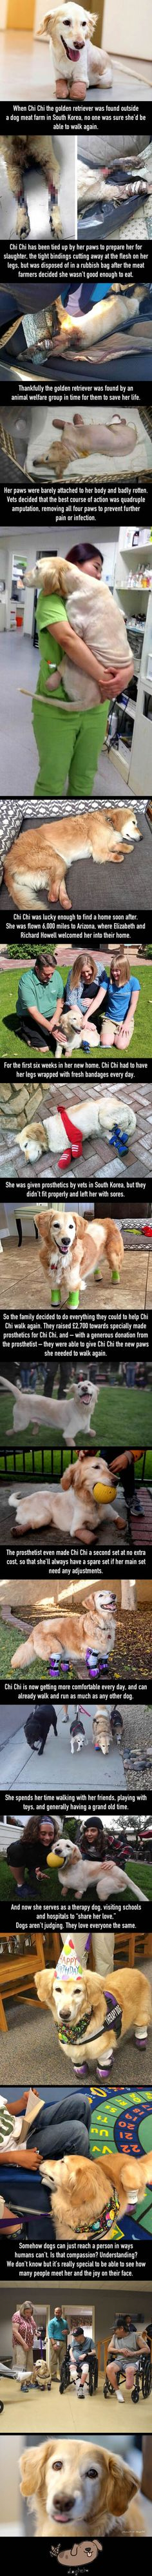 This Adorable Golden Retriever Is A Quadruple Amputee But Also A Popular Therapy Dog